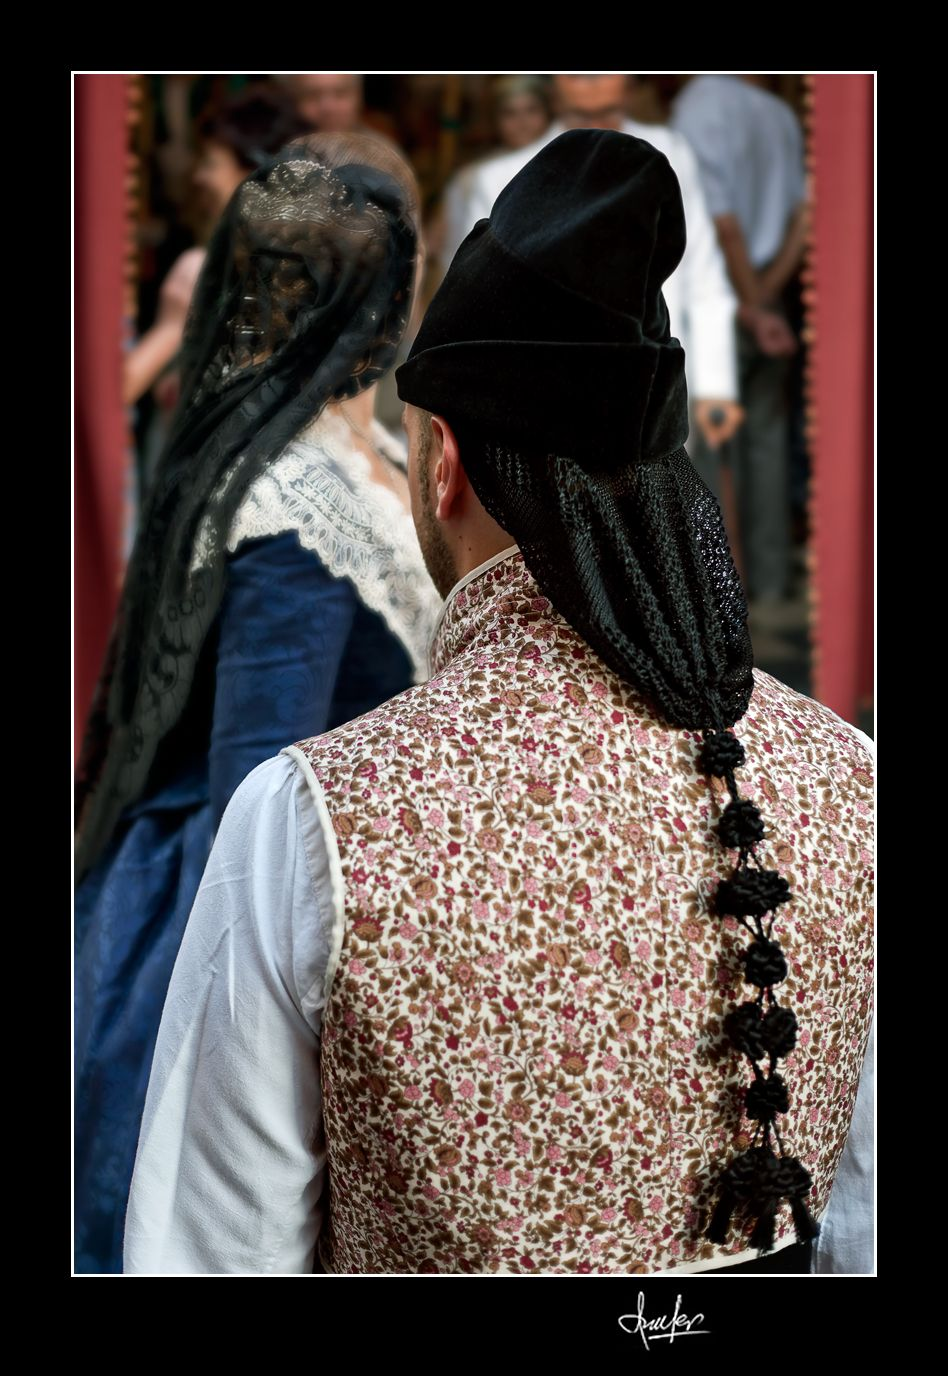 Spain. Valencian man in traditional dress with black cap. If you like this scene, you can purchase Fine Art Reproductions of the best JC Ferro's photos clicking on the image. http://fineartamerica.com/featured/bel-air-1956-miami-juan-carlos-ferro-duque.html